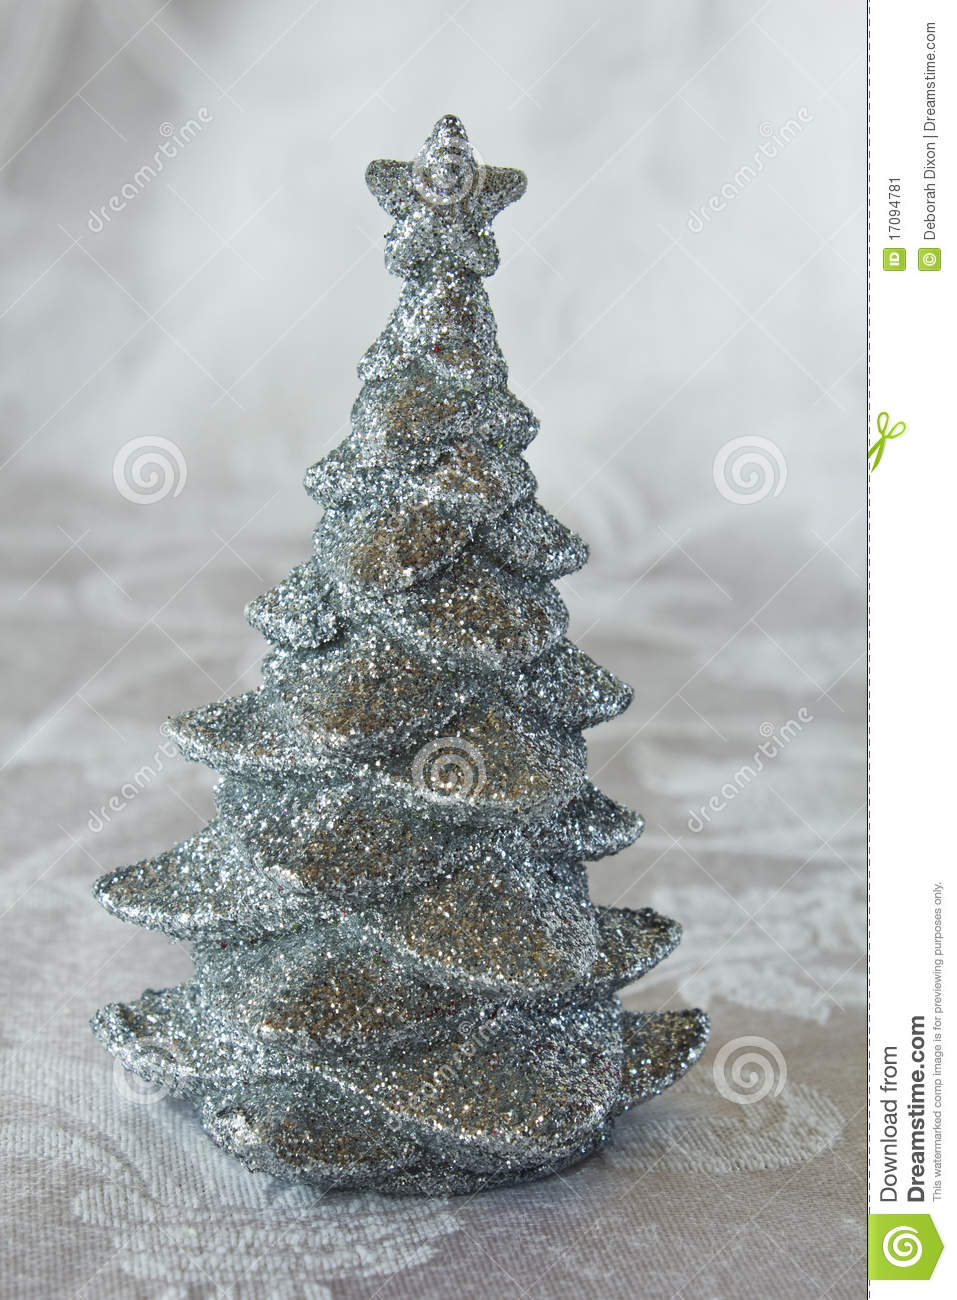 Silver Glitter Christmas Tree Stock Image Image Of